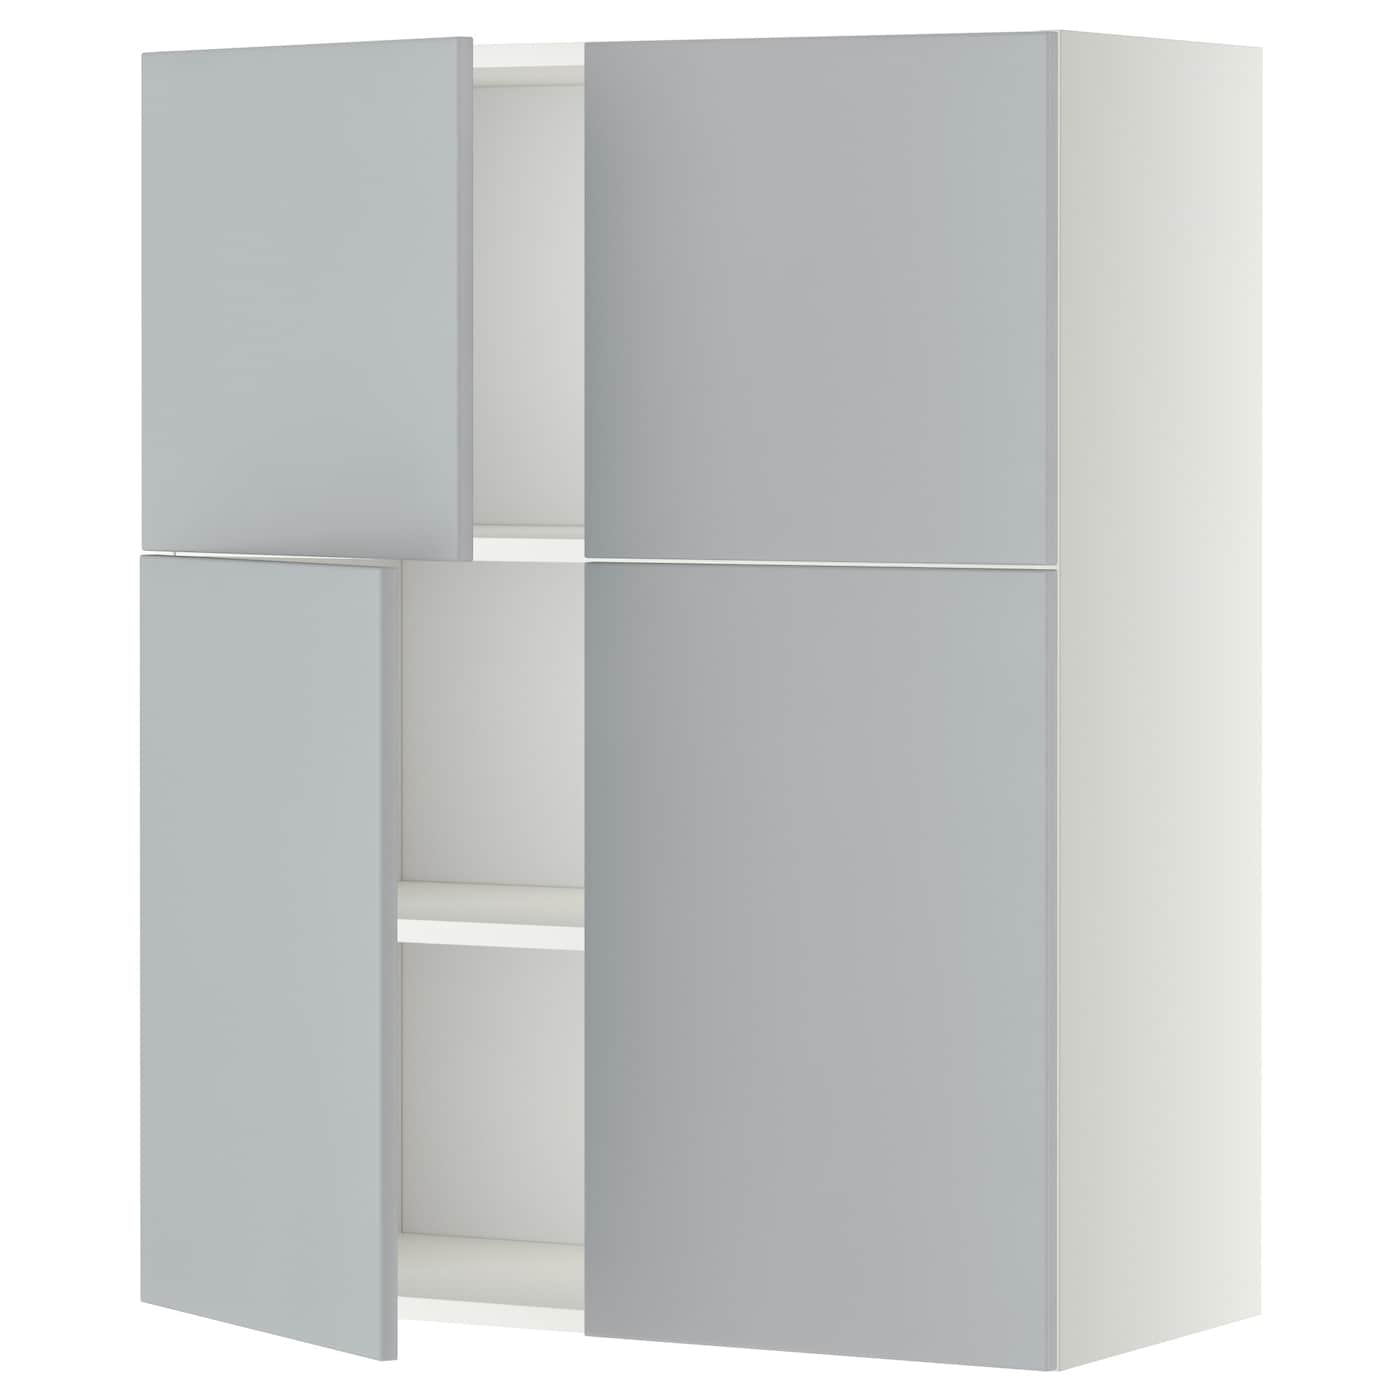 Metod wall cabinet with shelves 4 doors white veddinge for White kitchen wall cabinets